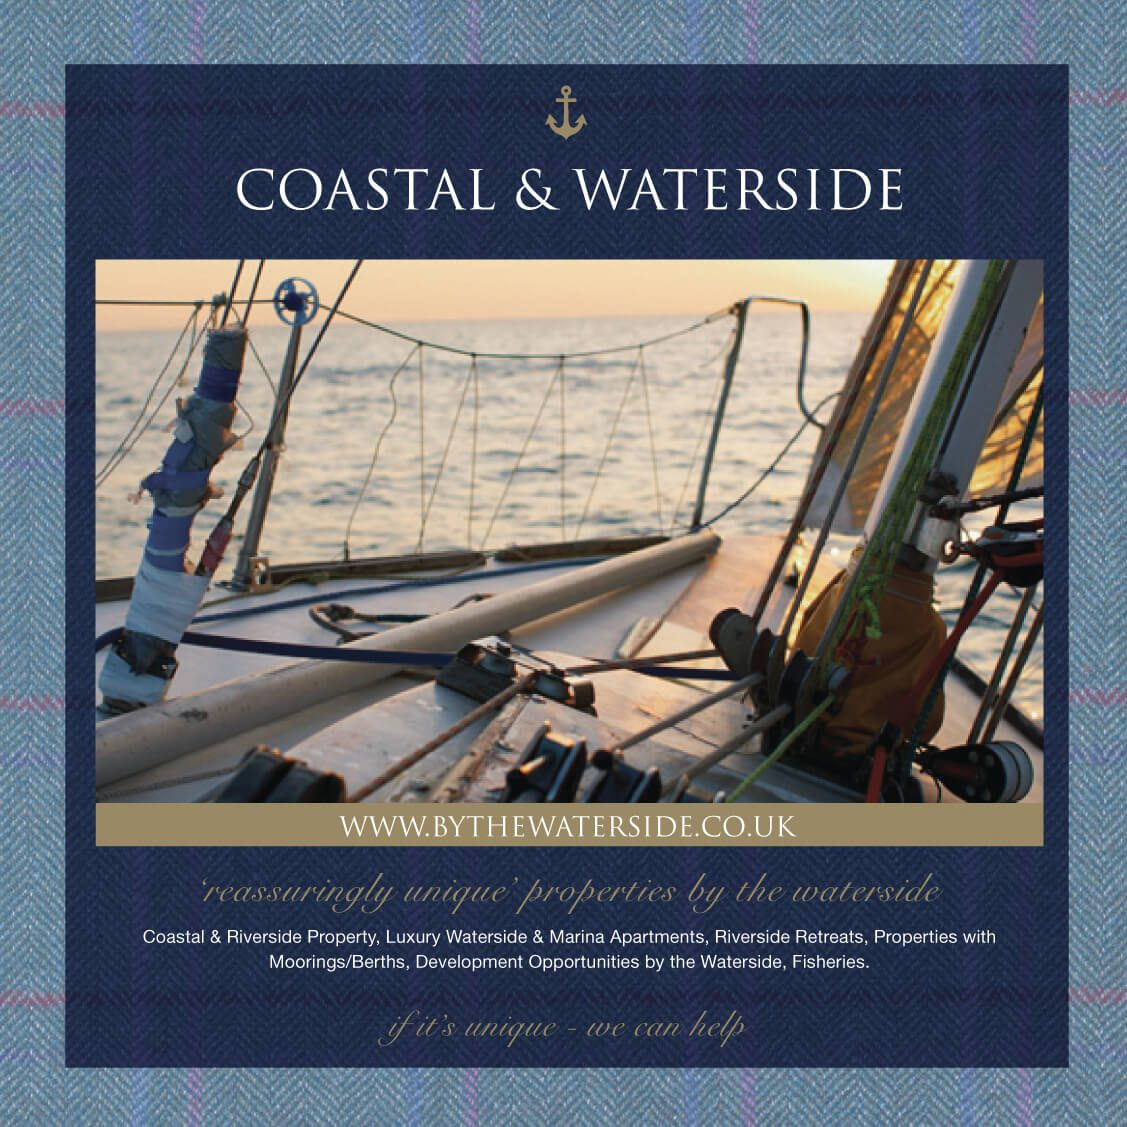 Zoe Napier Coastal & Waterside brochure page